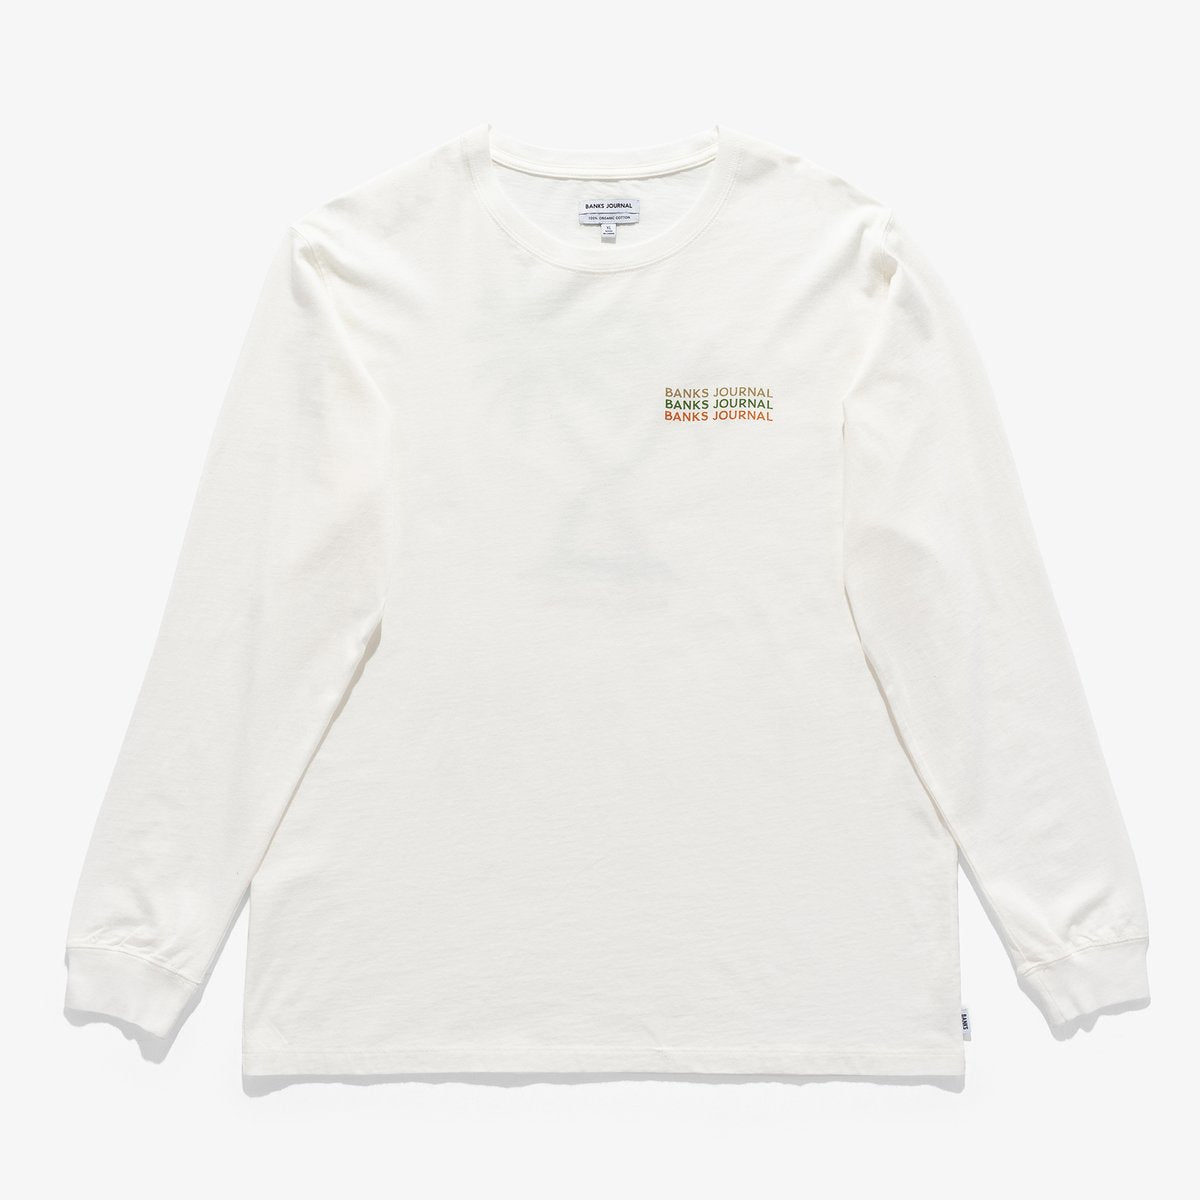 Green Haze L/S Tee - Off White